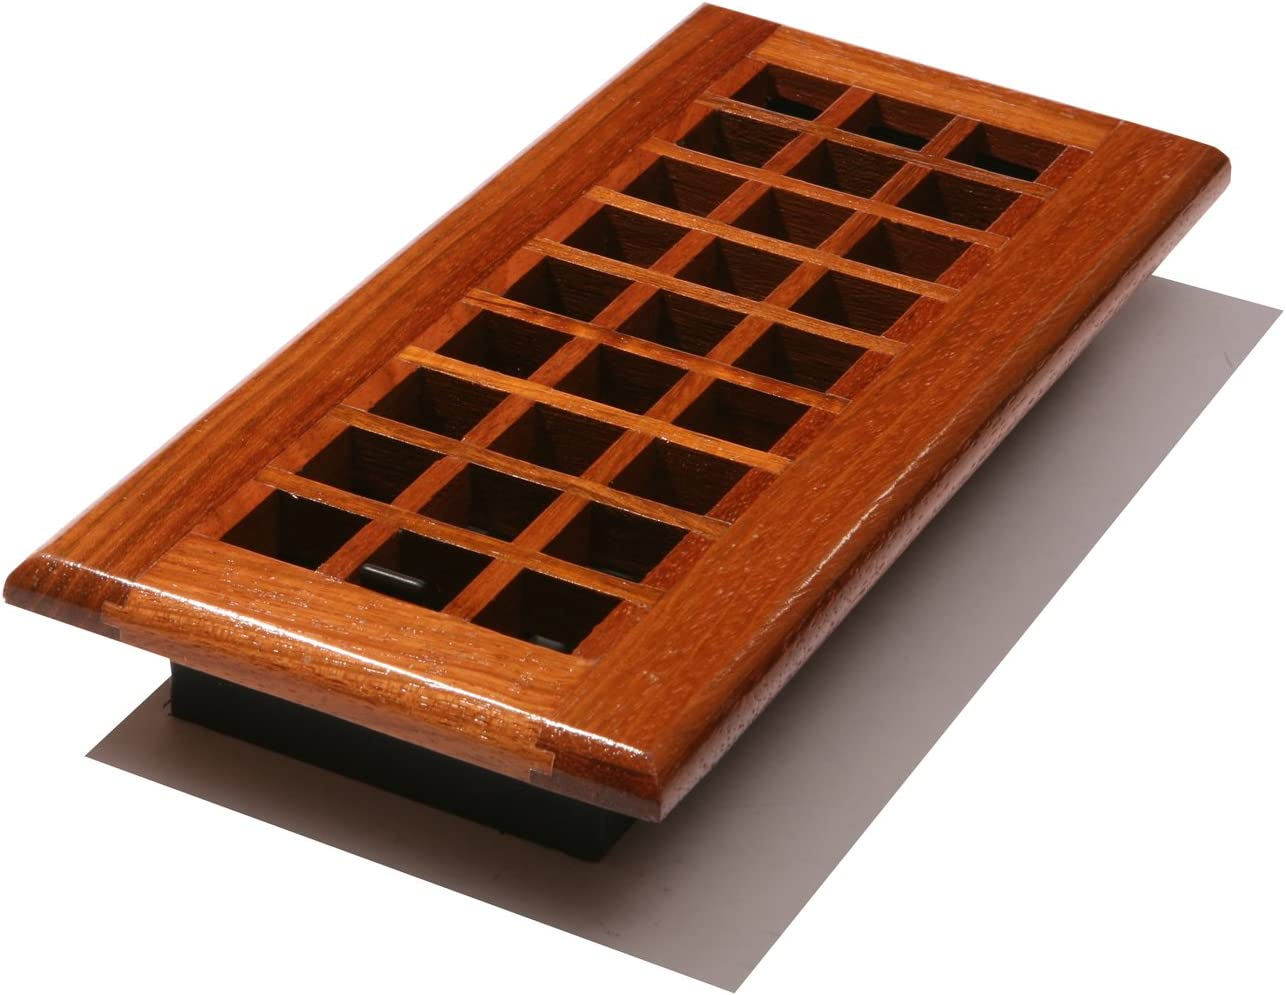 4-Inch by 12-Inch Natural Oak Decor Grates WL412-N Wood Louver Floor Register